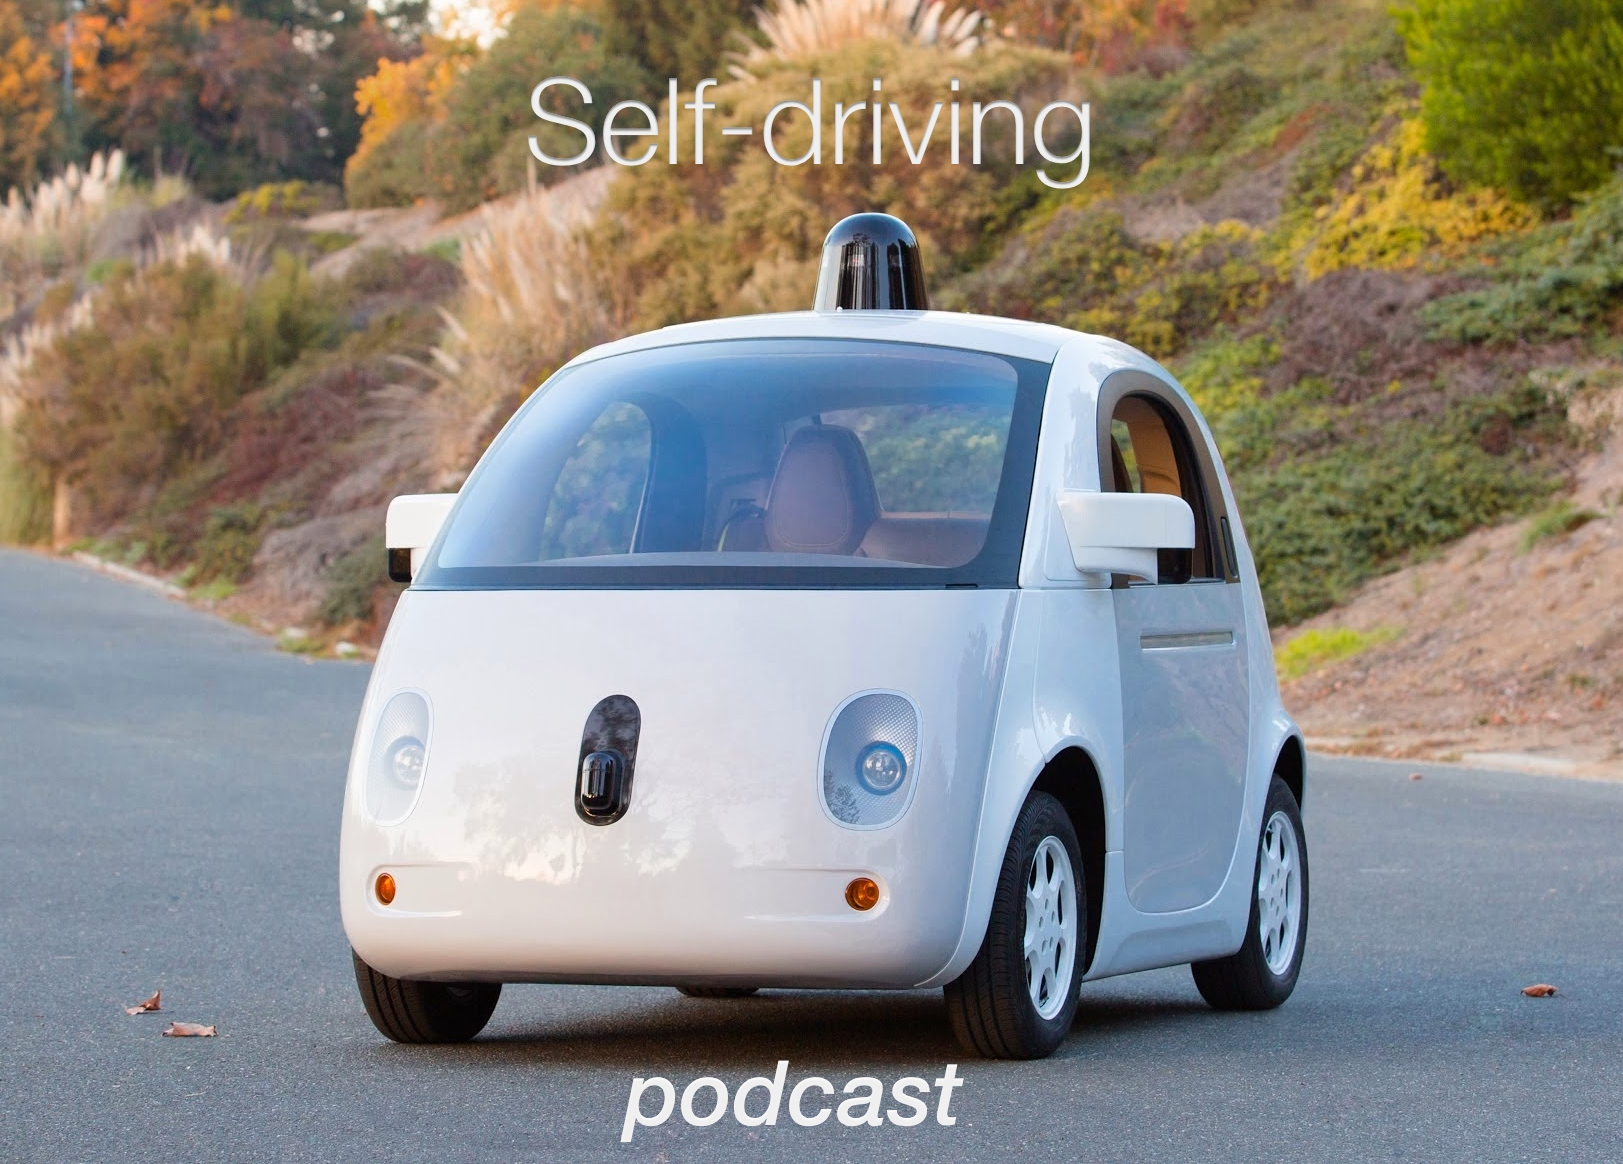 SyrupCast 33: Self-driving podcast